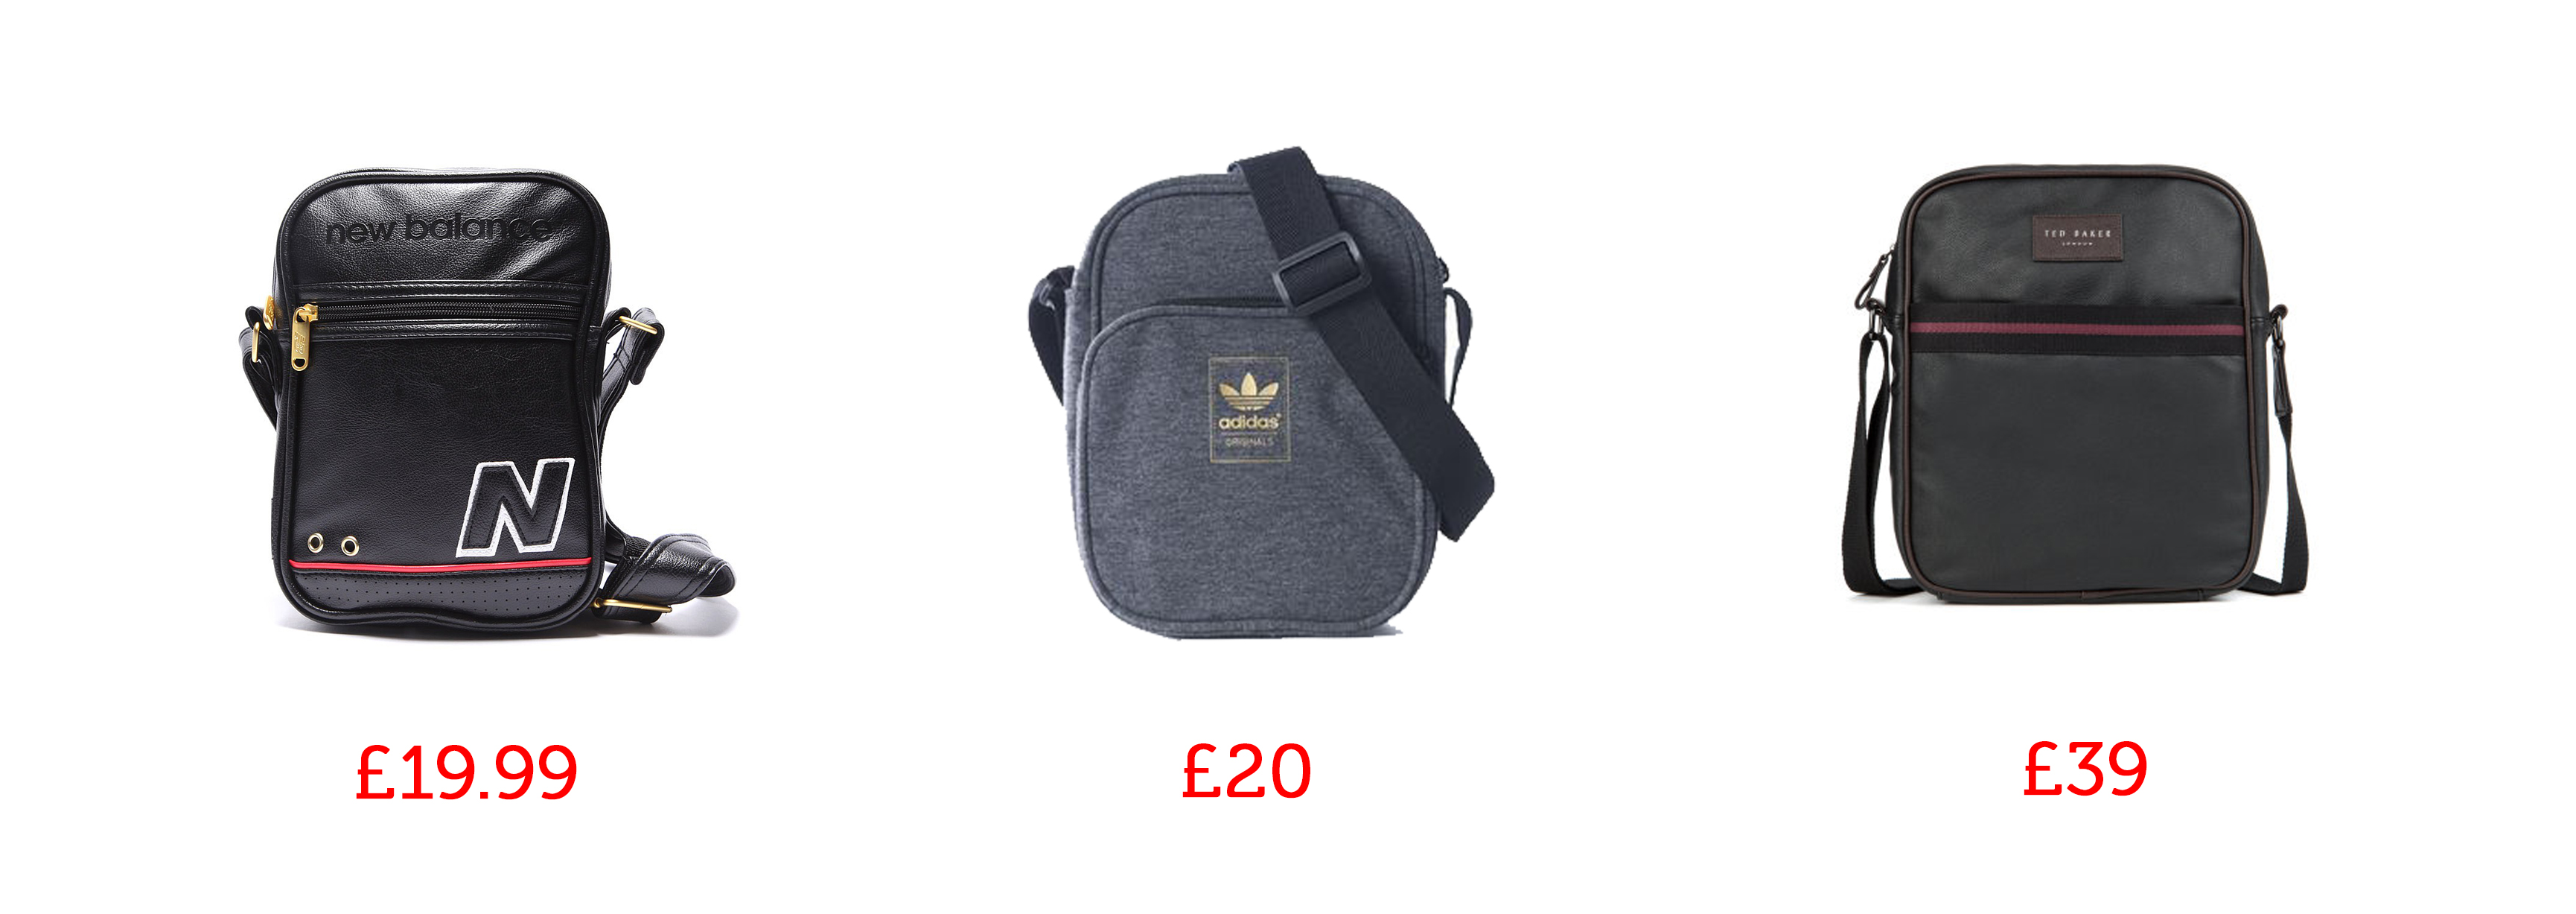 minibags man bag adidas footasylum ted baker